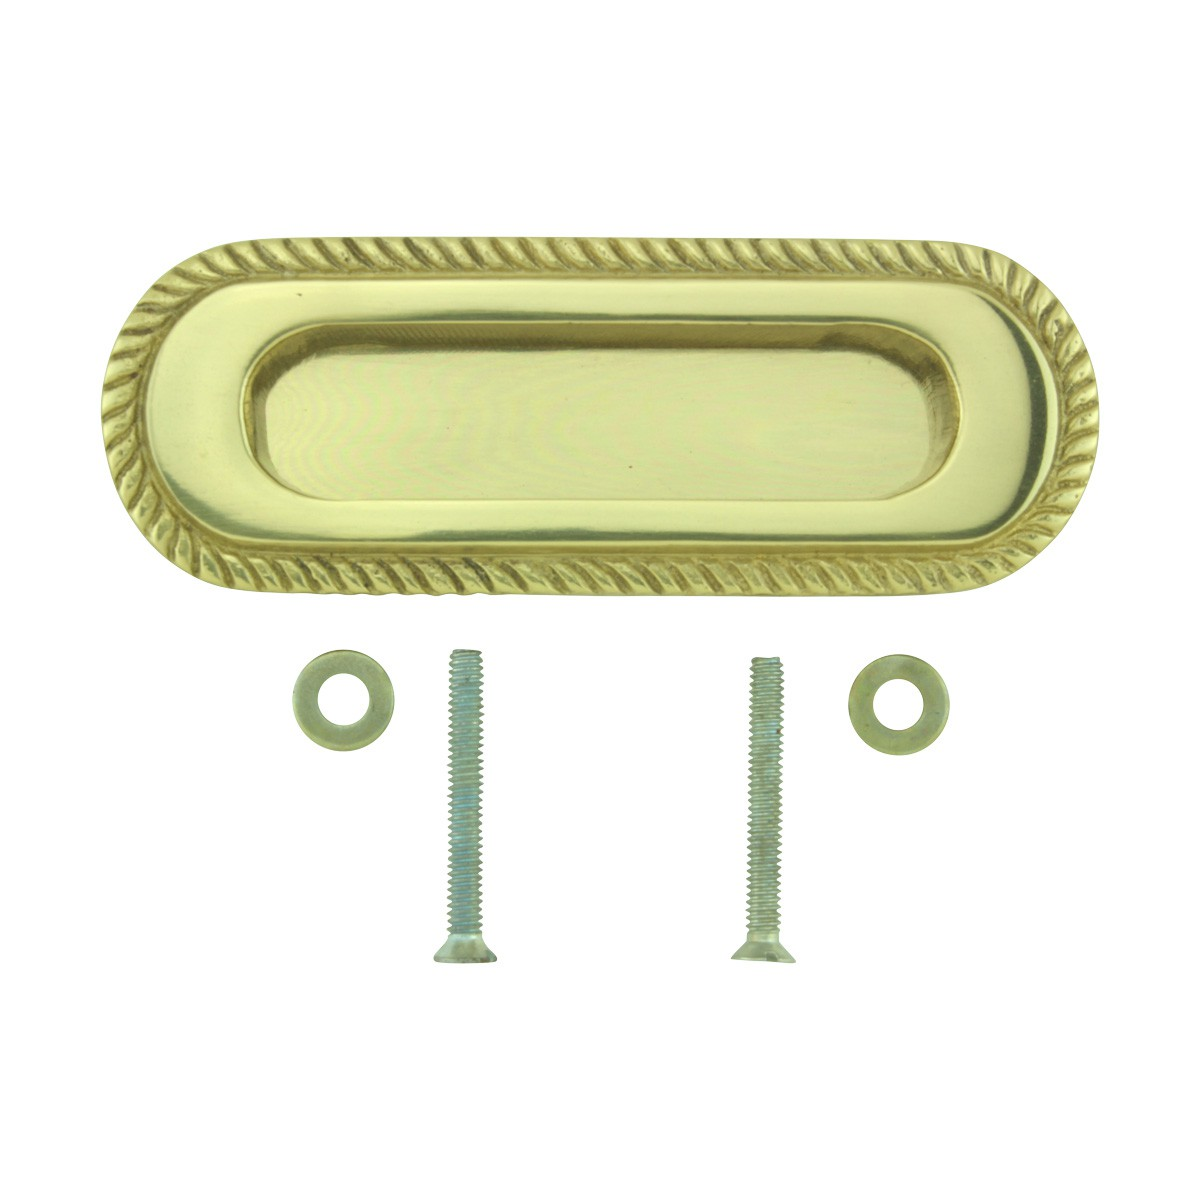 10 Georgian Rope Recessed Sash Lift Bright Brass Window Pulls Window Lifts Sash Lift